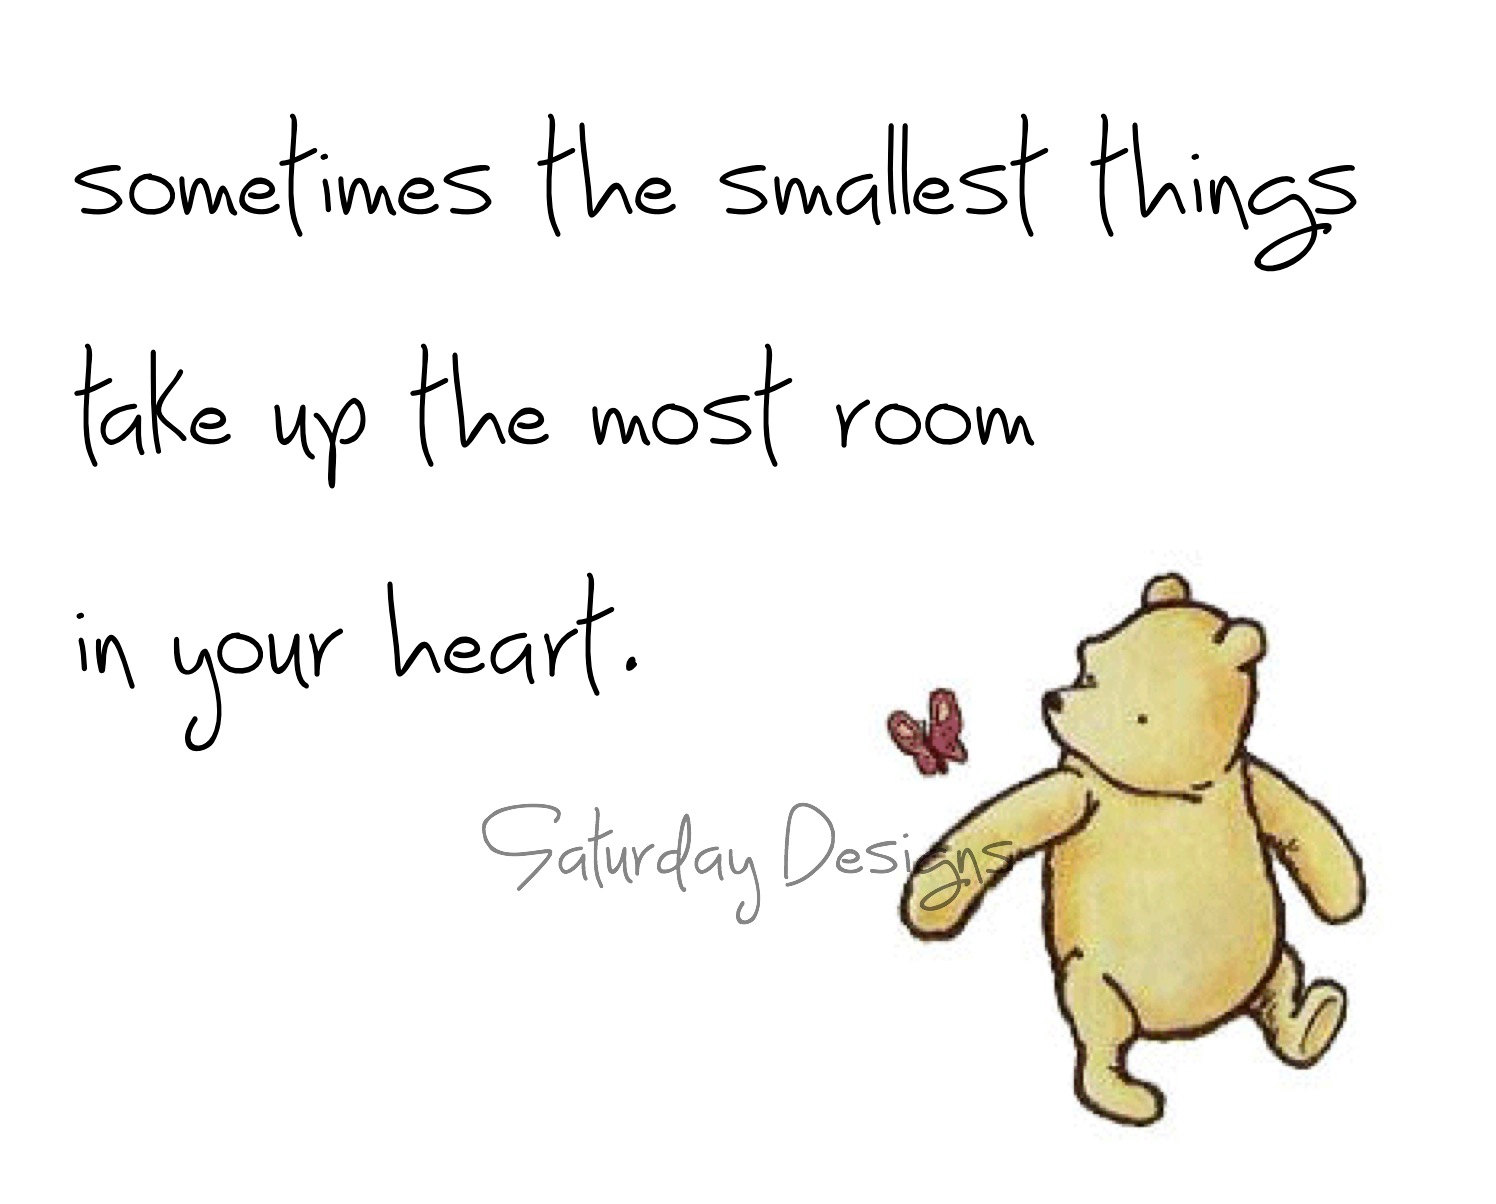 Quotes From Winnie The Pooh About Friendship Fascinating Winnie The Pooh Discoveredlonneke Looije On We Heart It